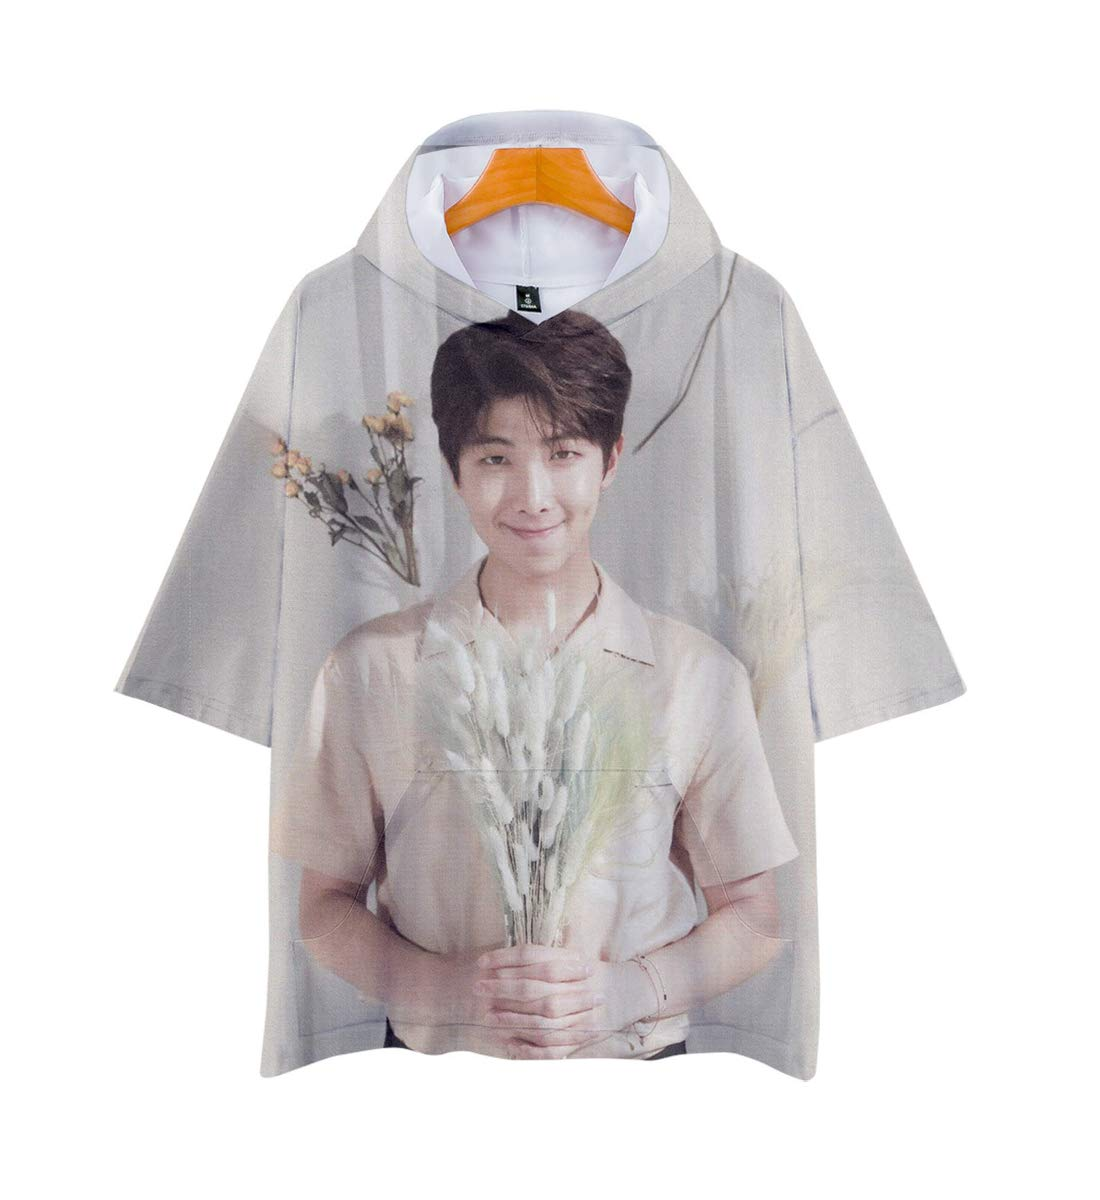 APHT Unisex BTS 3D Hoodie Short Sleeve T-Shirt for Men Women Teen Bangtan Boys Jin Suga J-Hope RM Jimin V Jung Kook Summer Tops Sweater Pullover Jackets